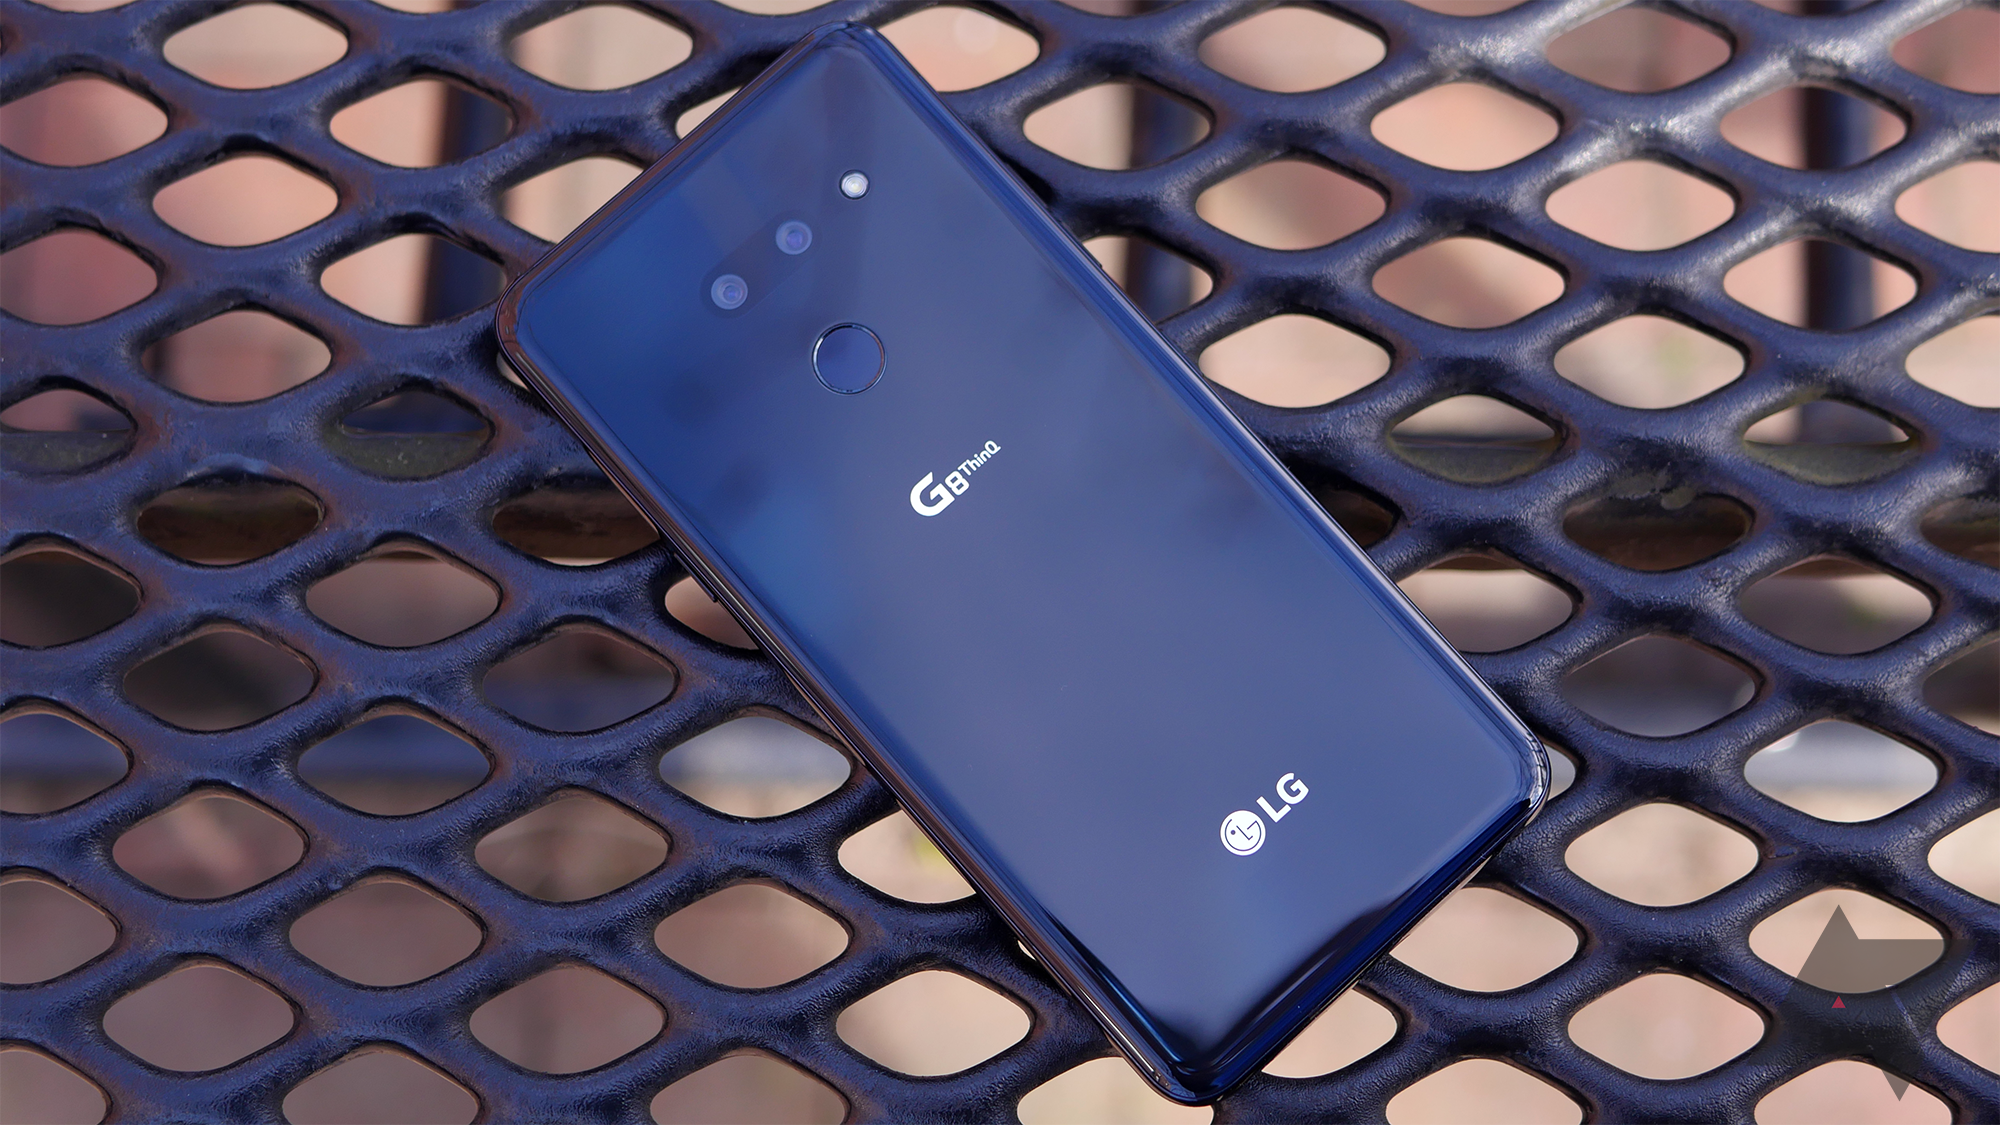 The LG G8 ThinQ is down to $650 ($200 off) at B&H through Saturday